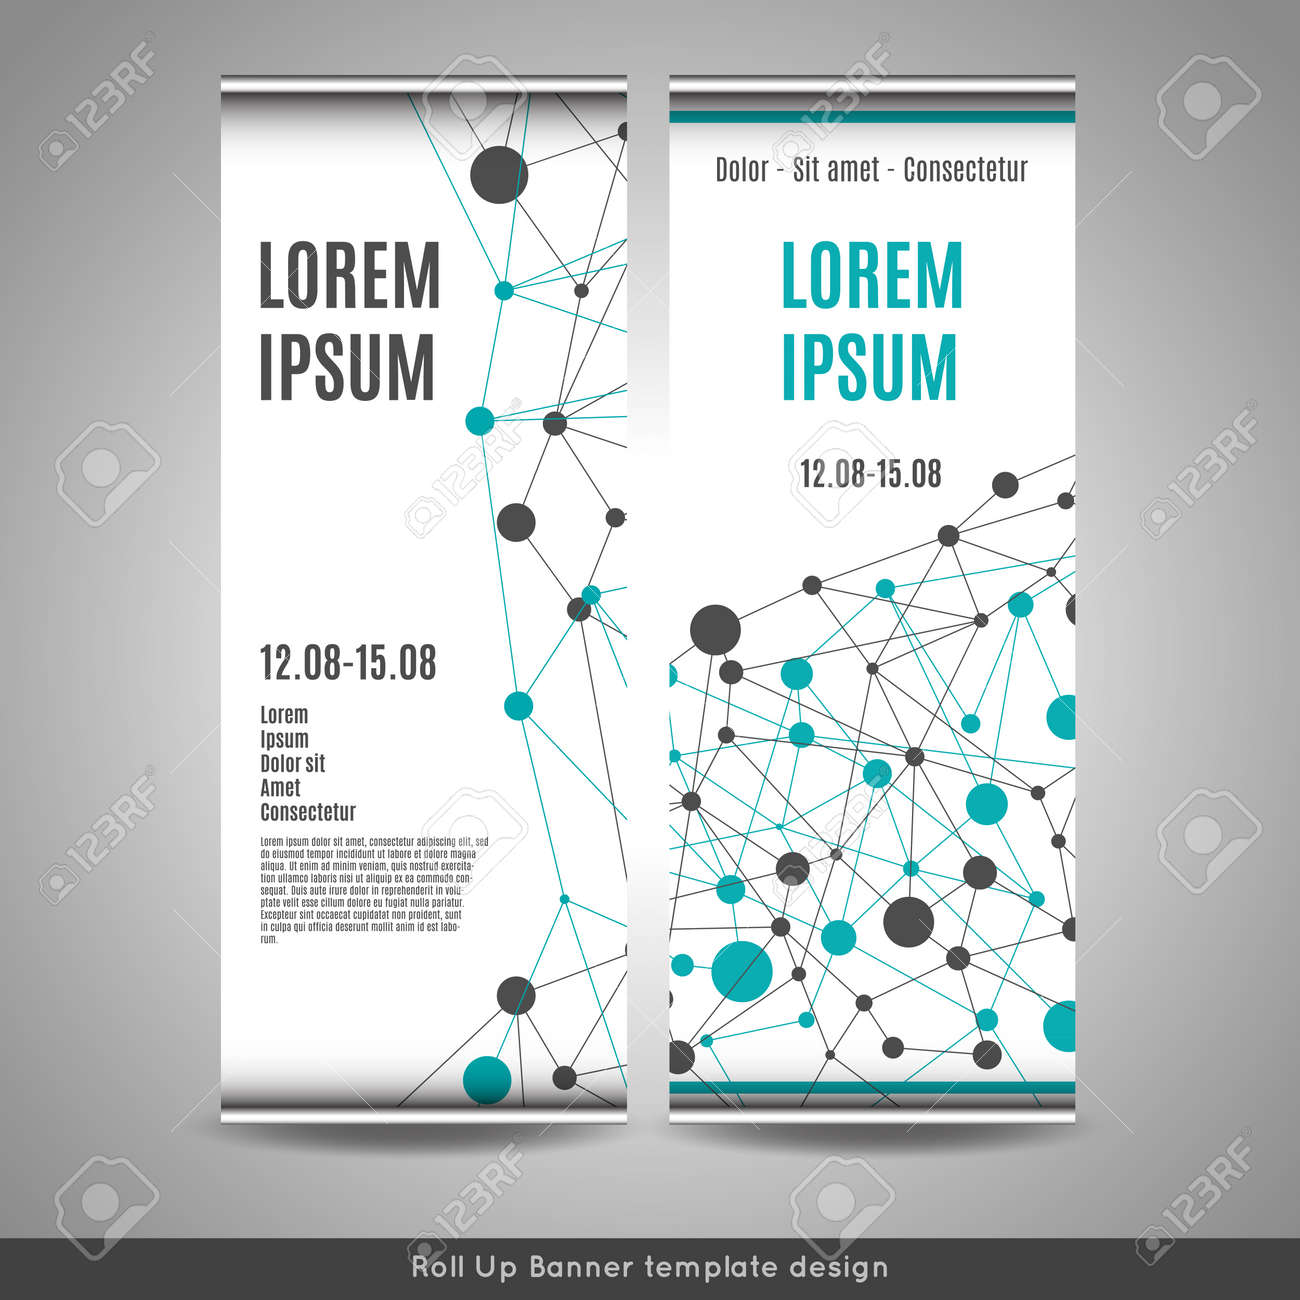 roll up banner template design with connection pattern royalty free